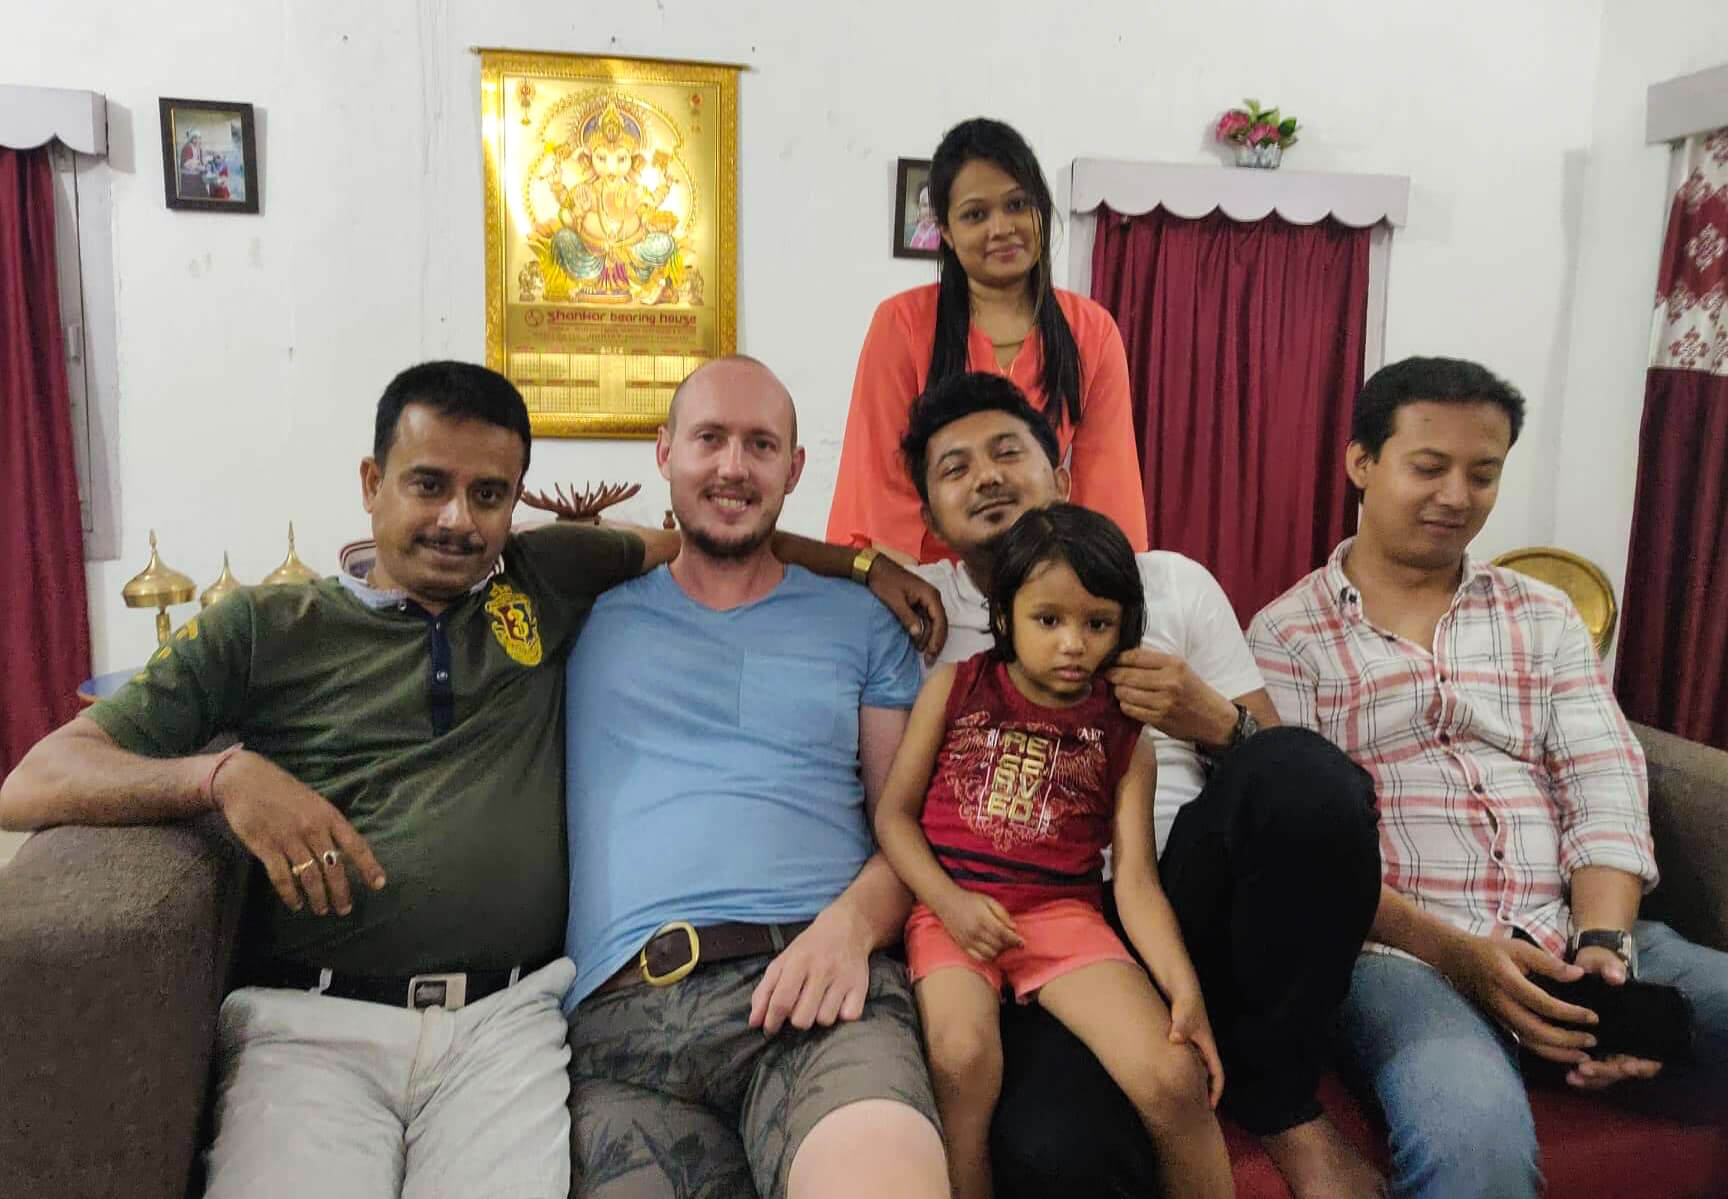 Me with Bhaskarnil's cousin's family, including his wife and daughter.